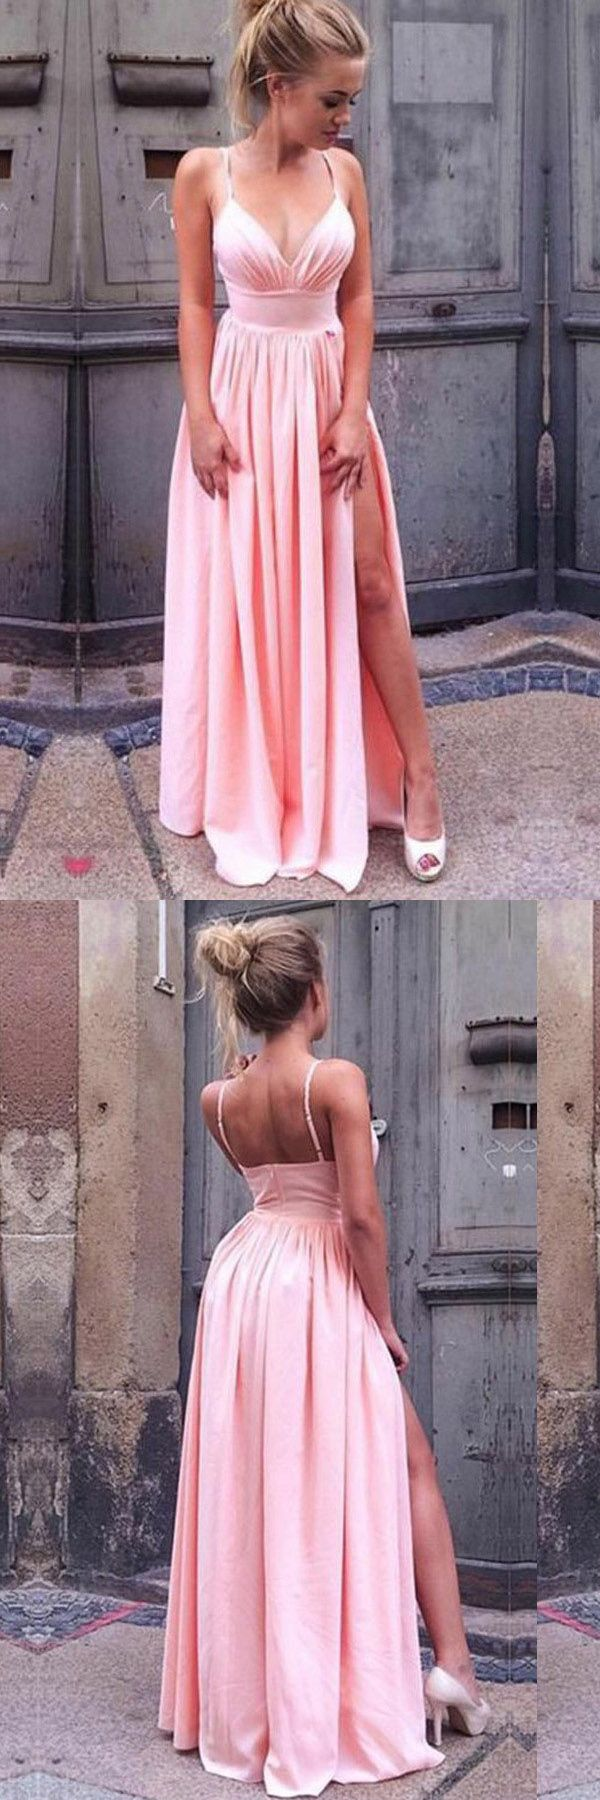 A-Line Spaghetti Straps Pink Pleated Prom Dress with High Split PG461 #promdress #eveningdress #partydress